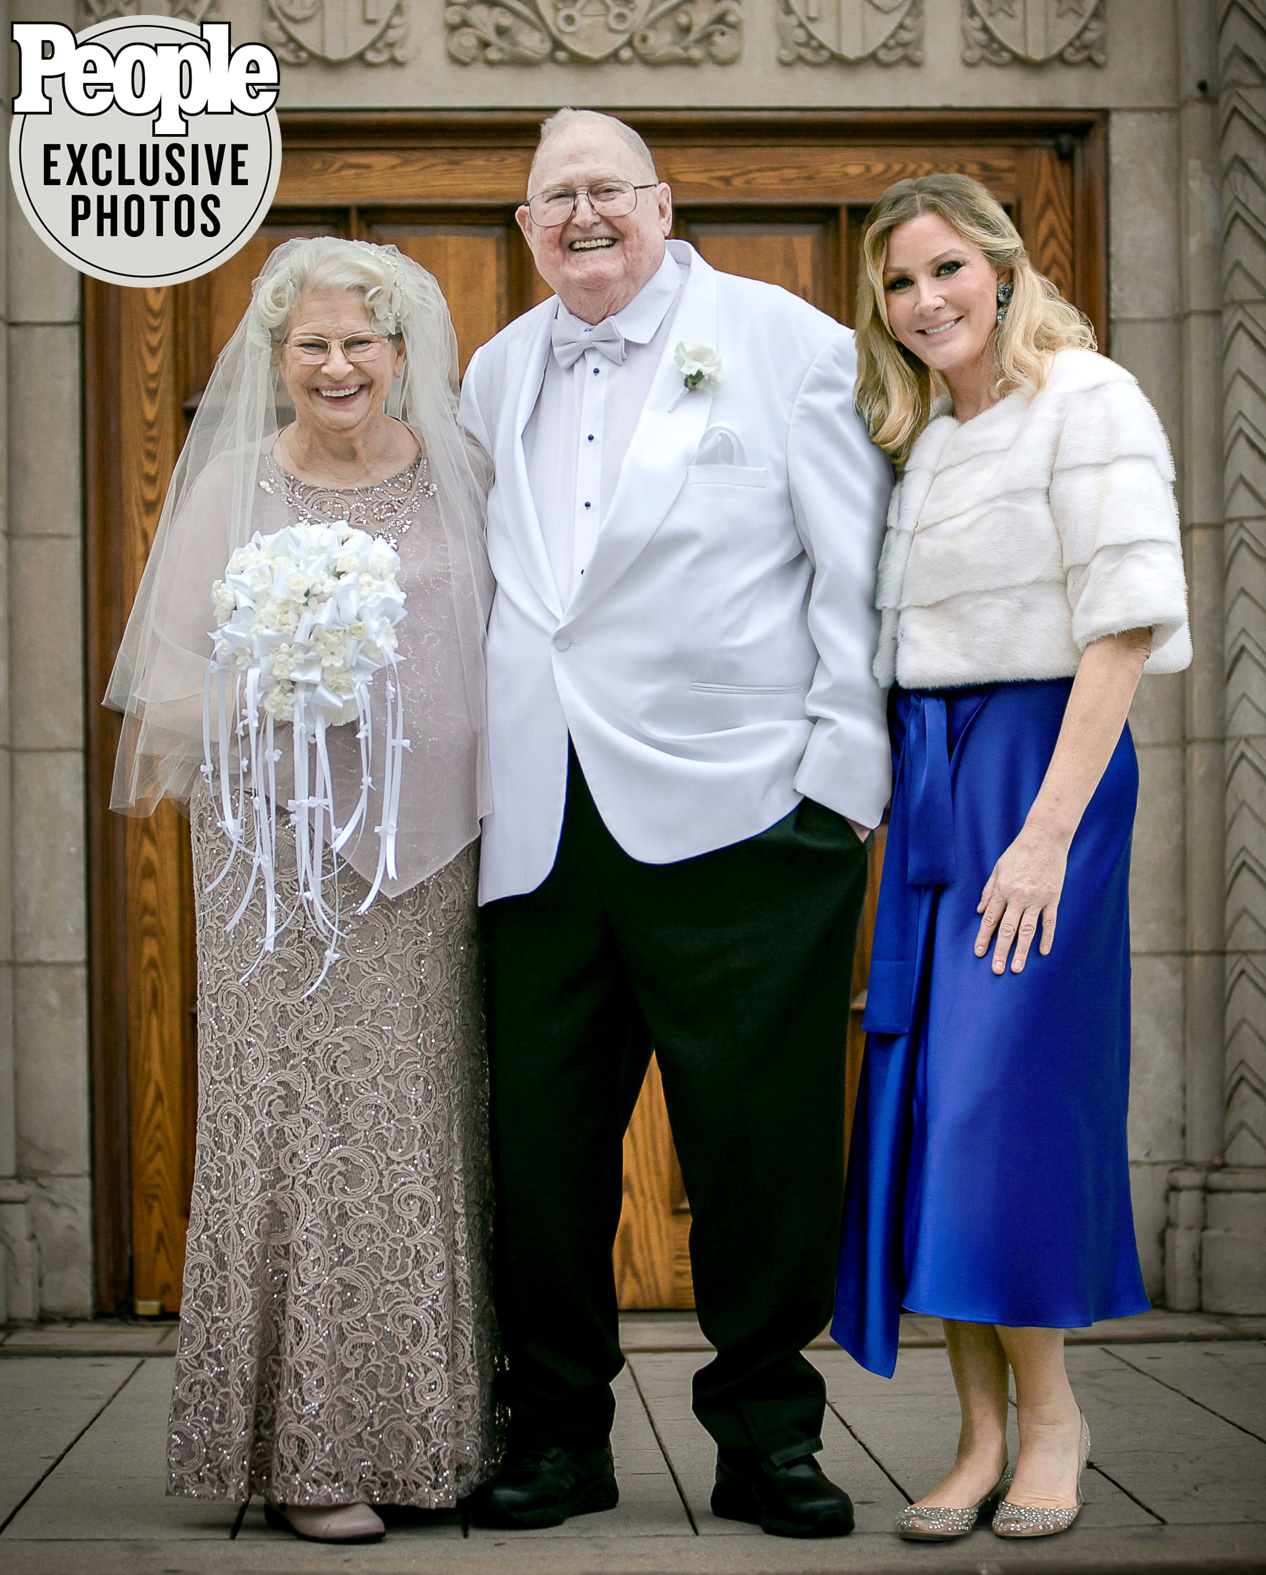 bill and Peggy singlehurst vow renewal